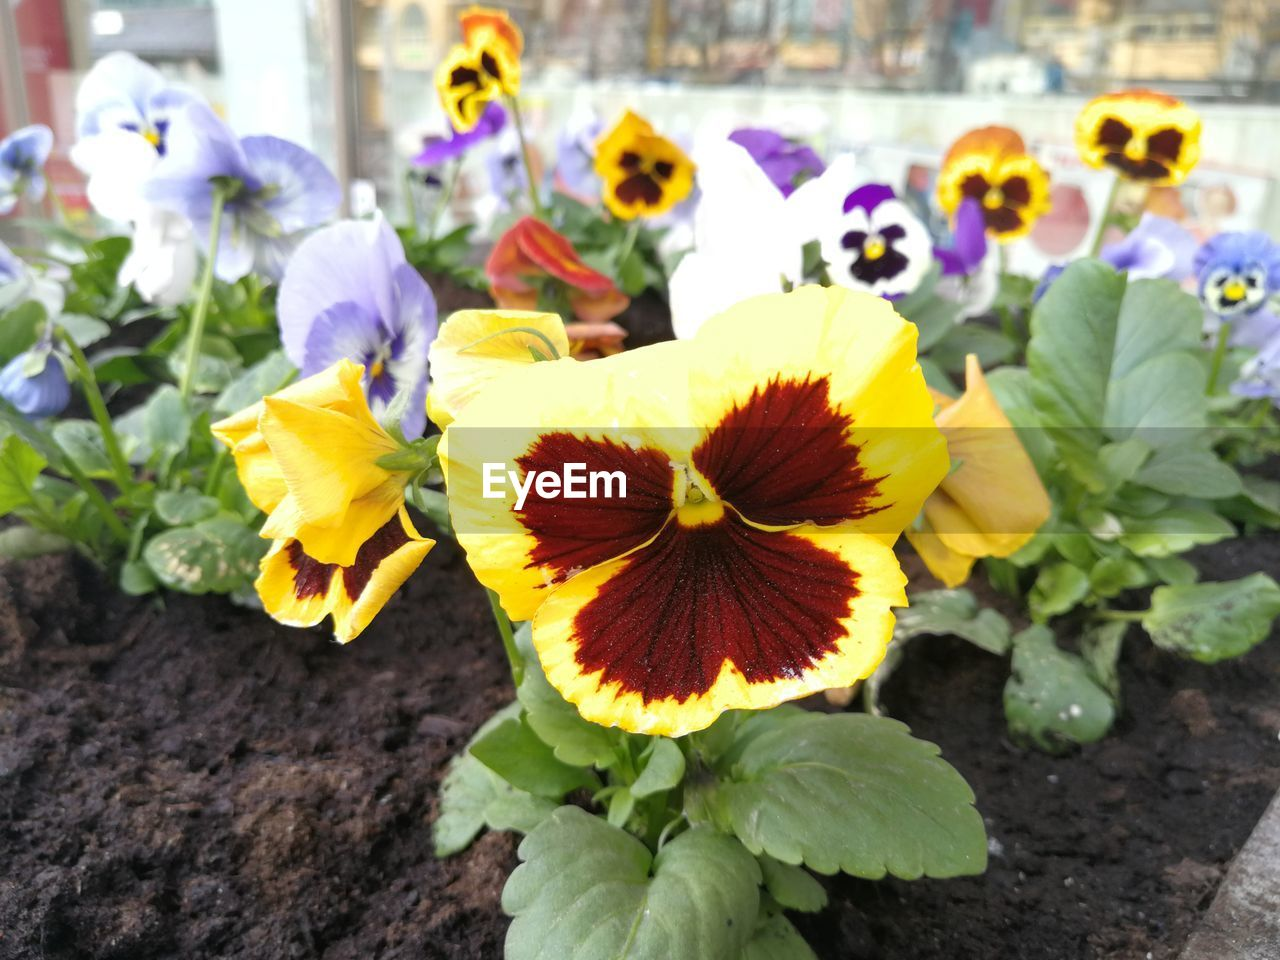 flowering plant, flower, vulnerability, plant, fragility, beauty in nature, flower head, freshness, inflorescence, growth, close-up, petal, nature, day, focus on foreground, no people, pansy, yellow, pollen, outdoors, softness